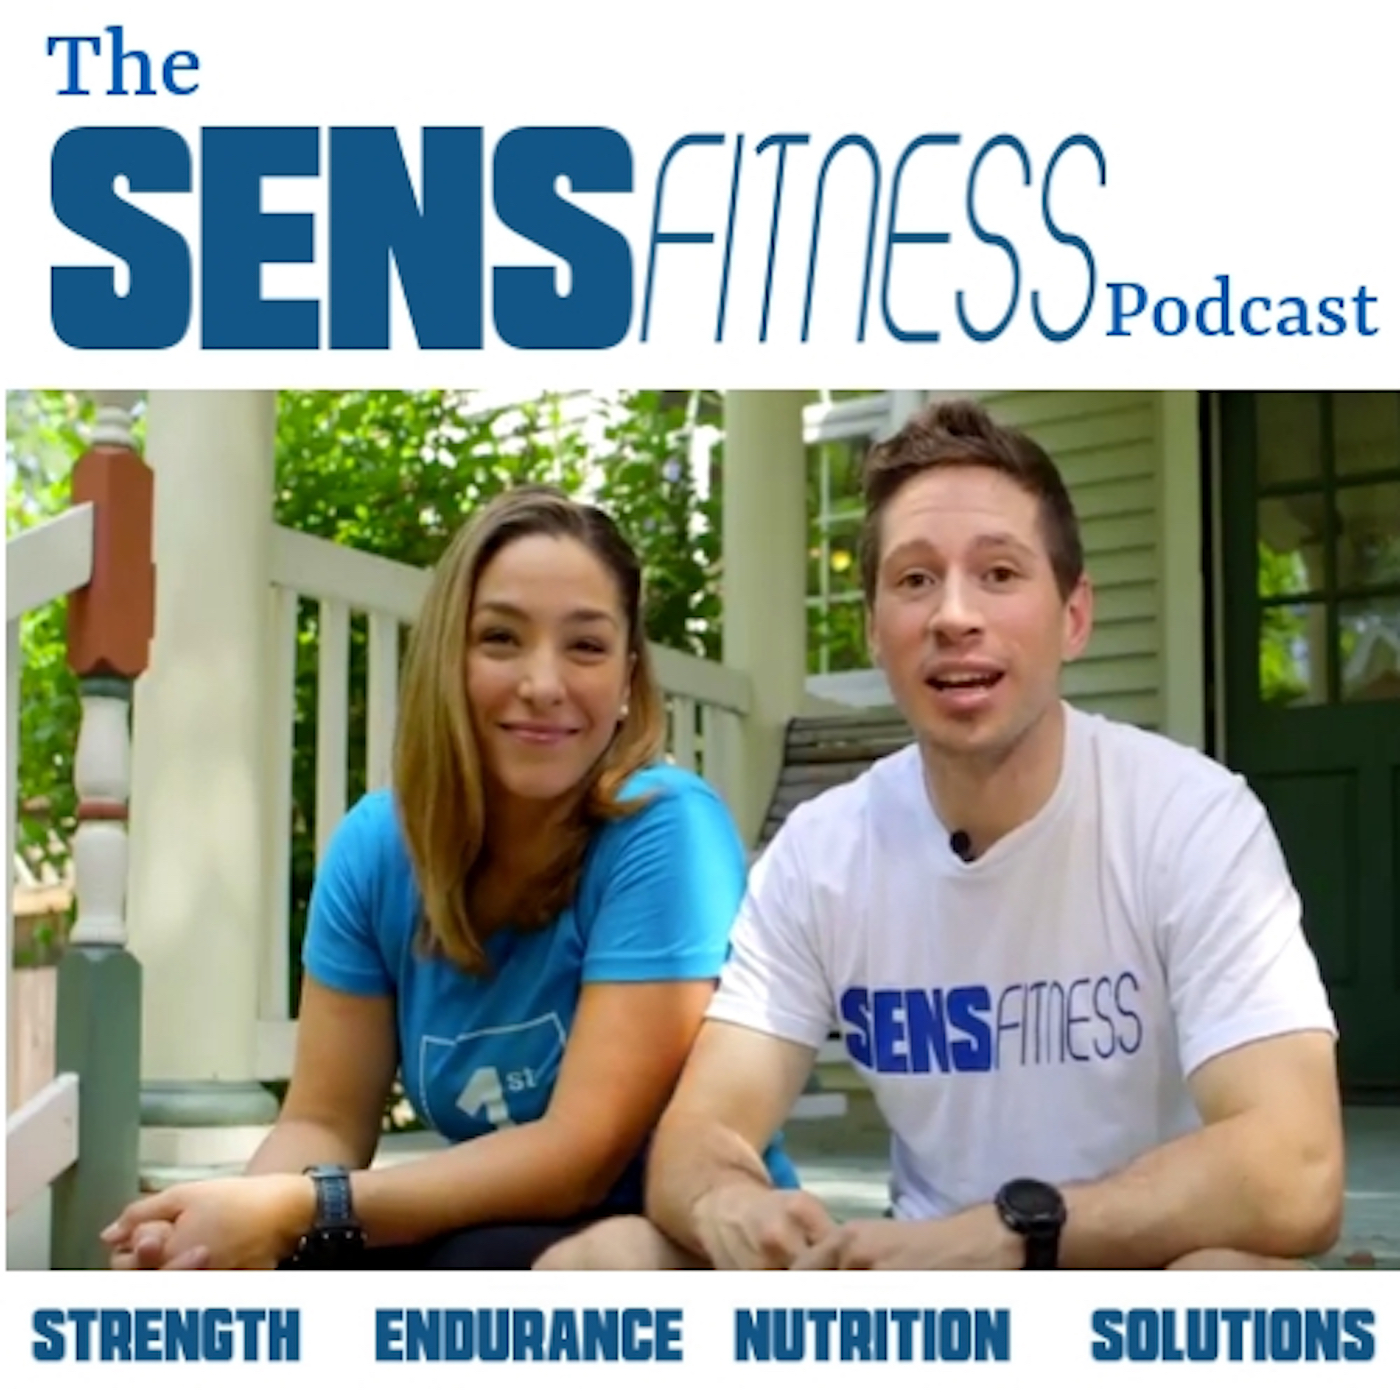 SENS Fitness Podcast